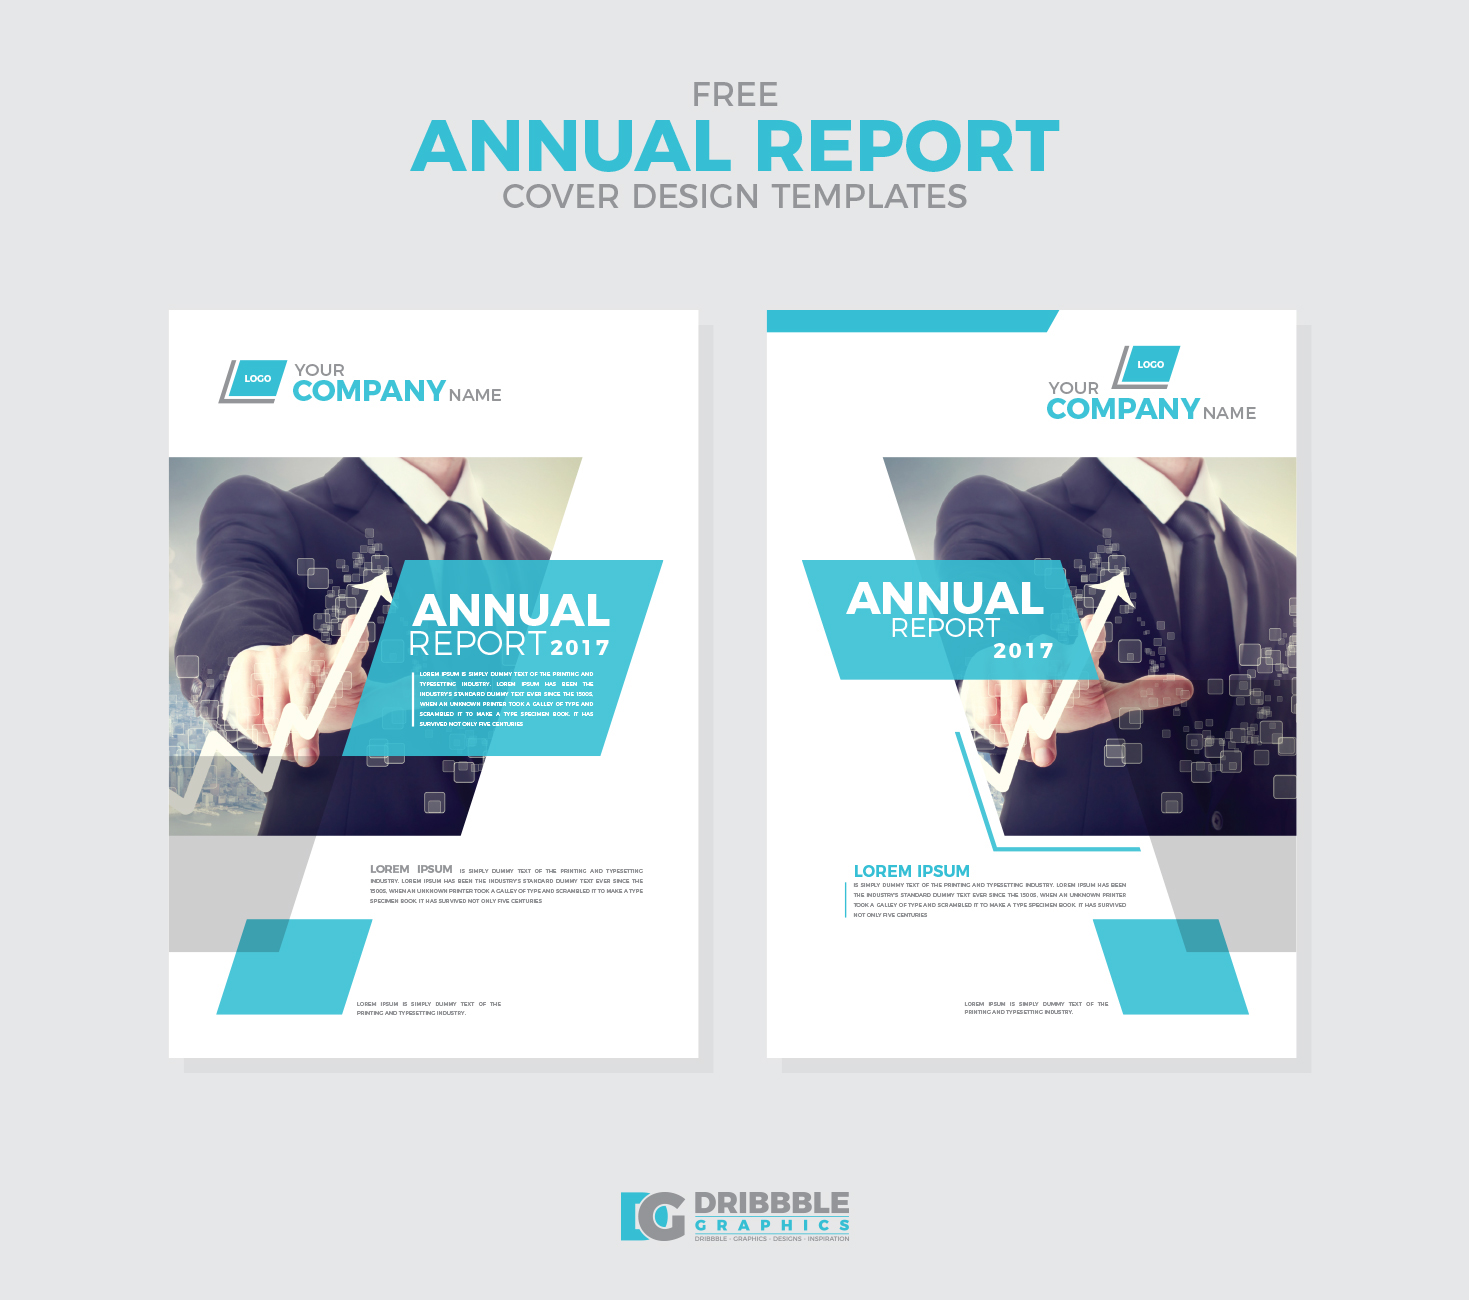 free annual report cover design templates on behance